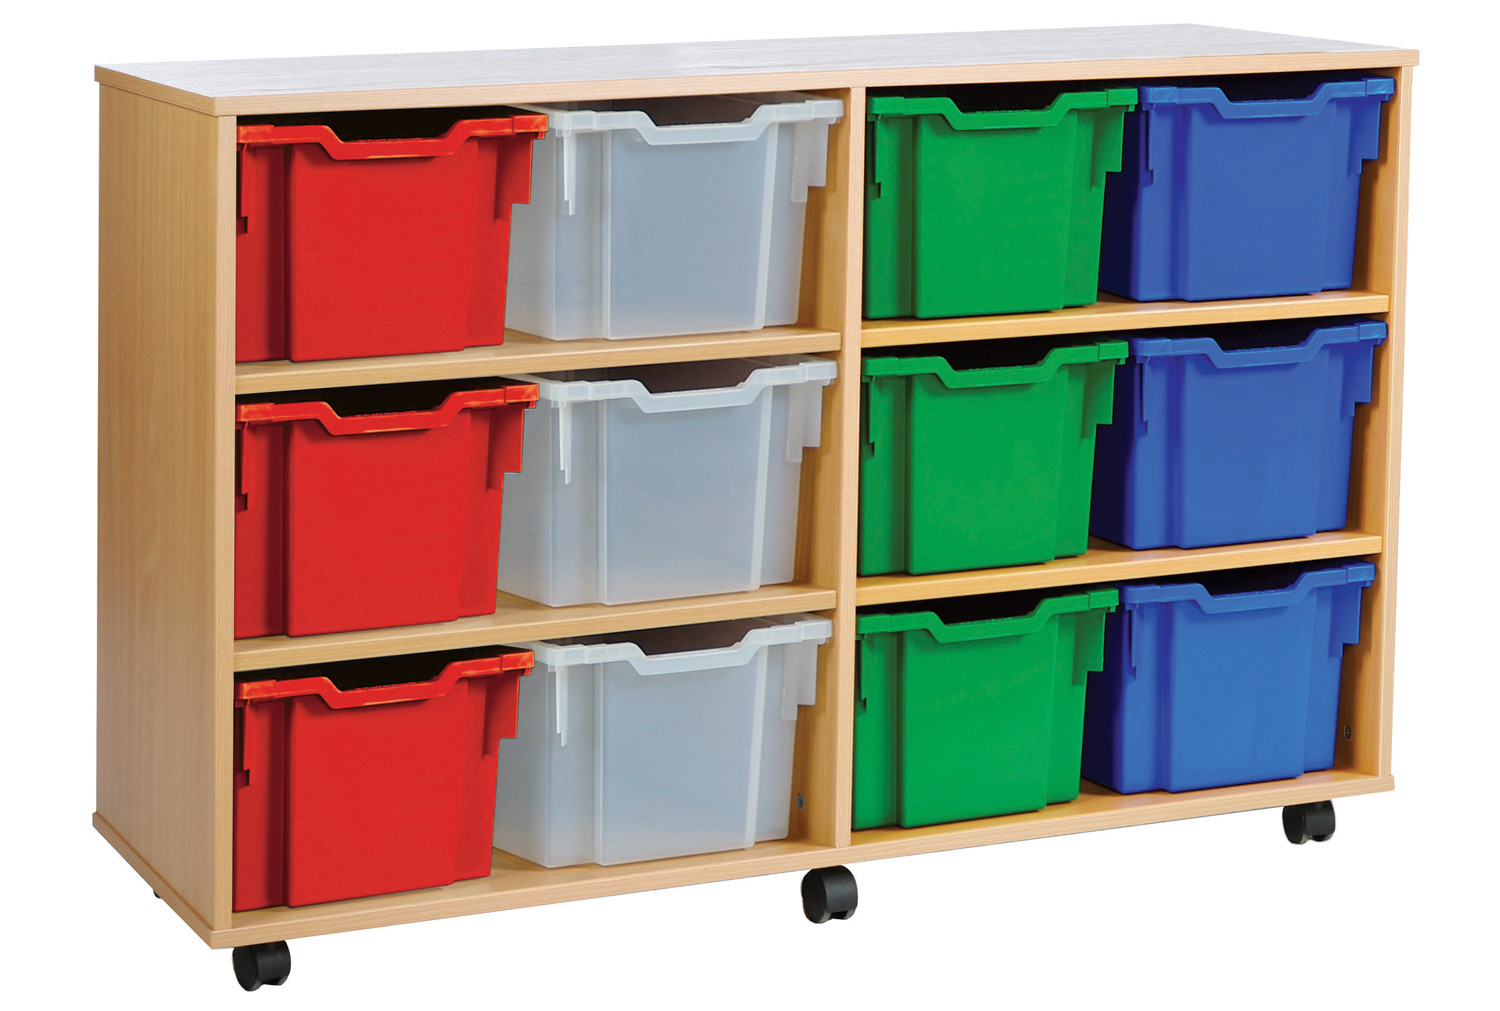 12 extra deep tray storage unit